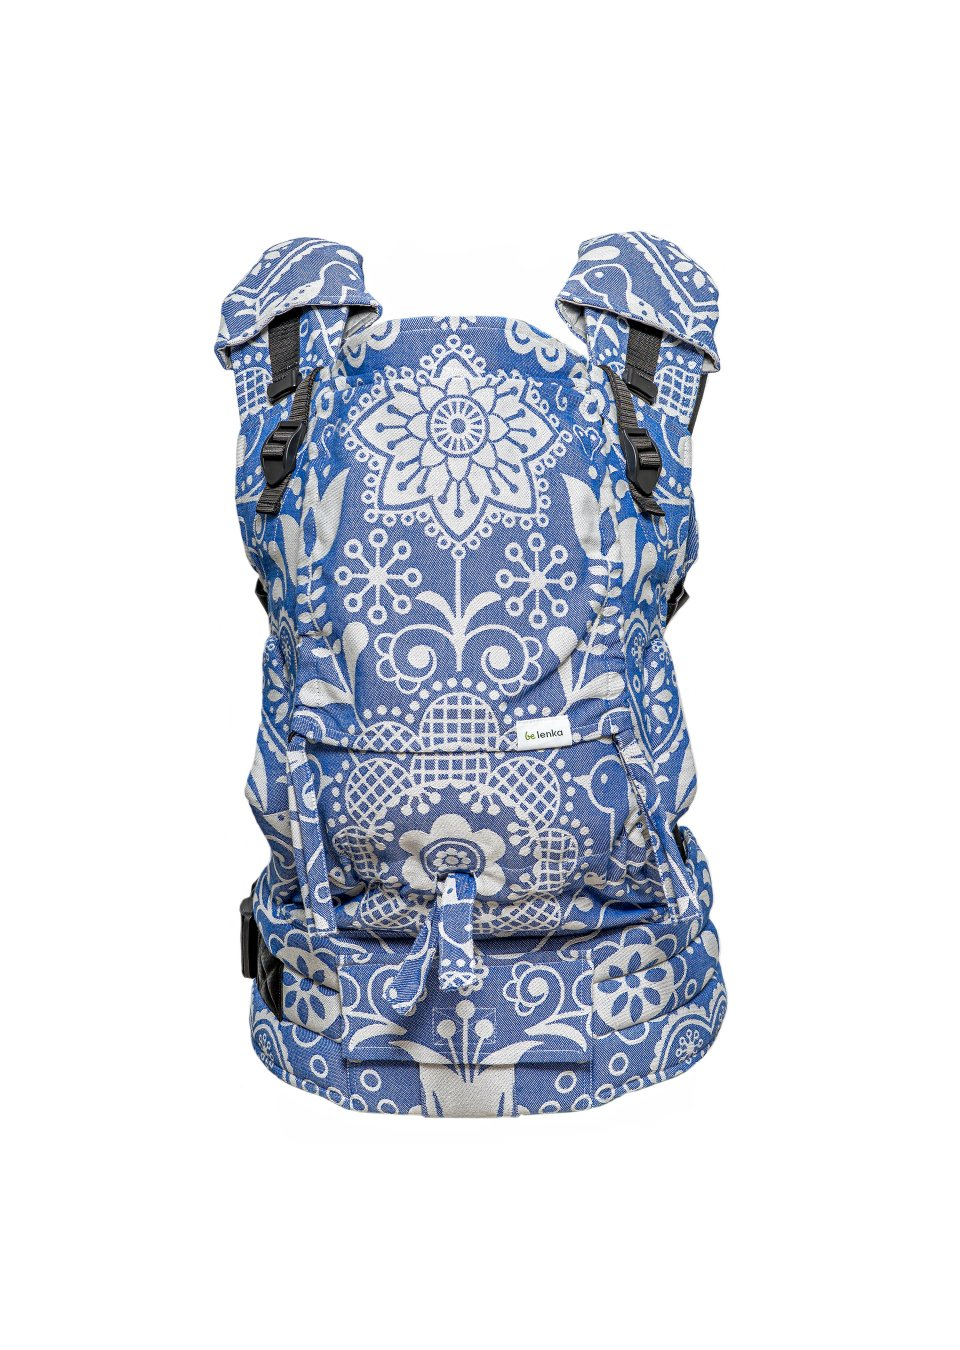 Baby Carrier - Be Lenka 4ever Folk - Blue